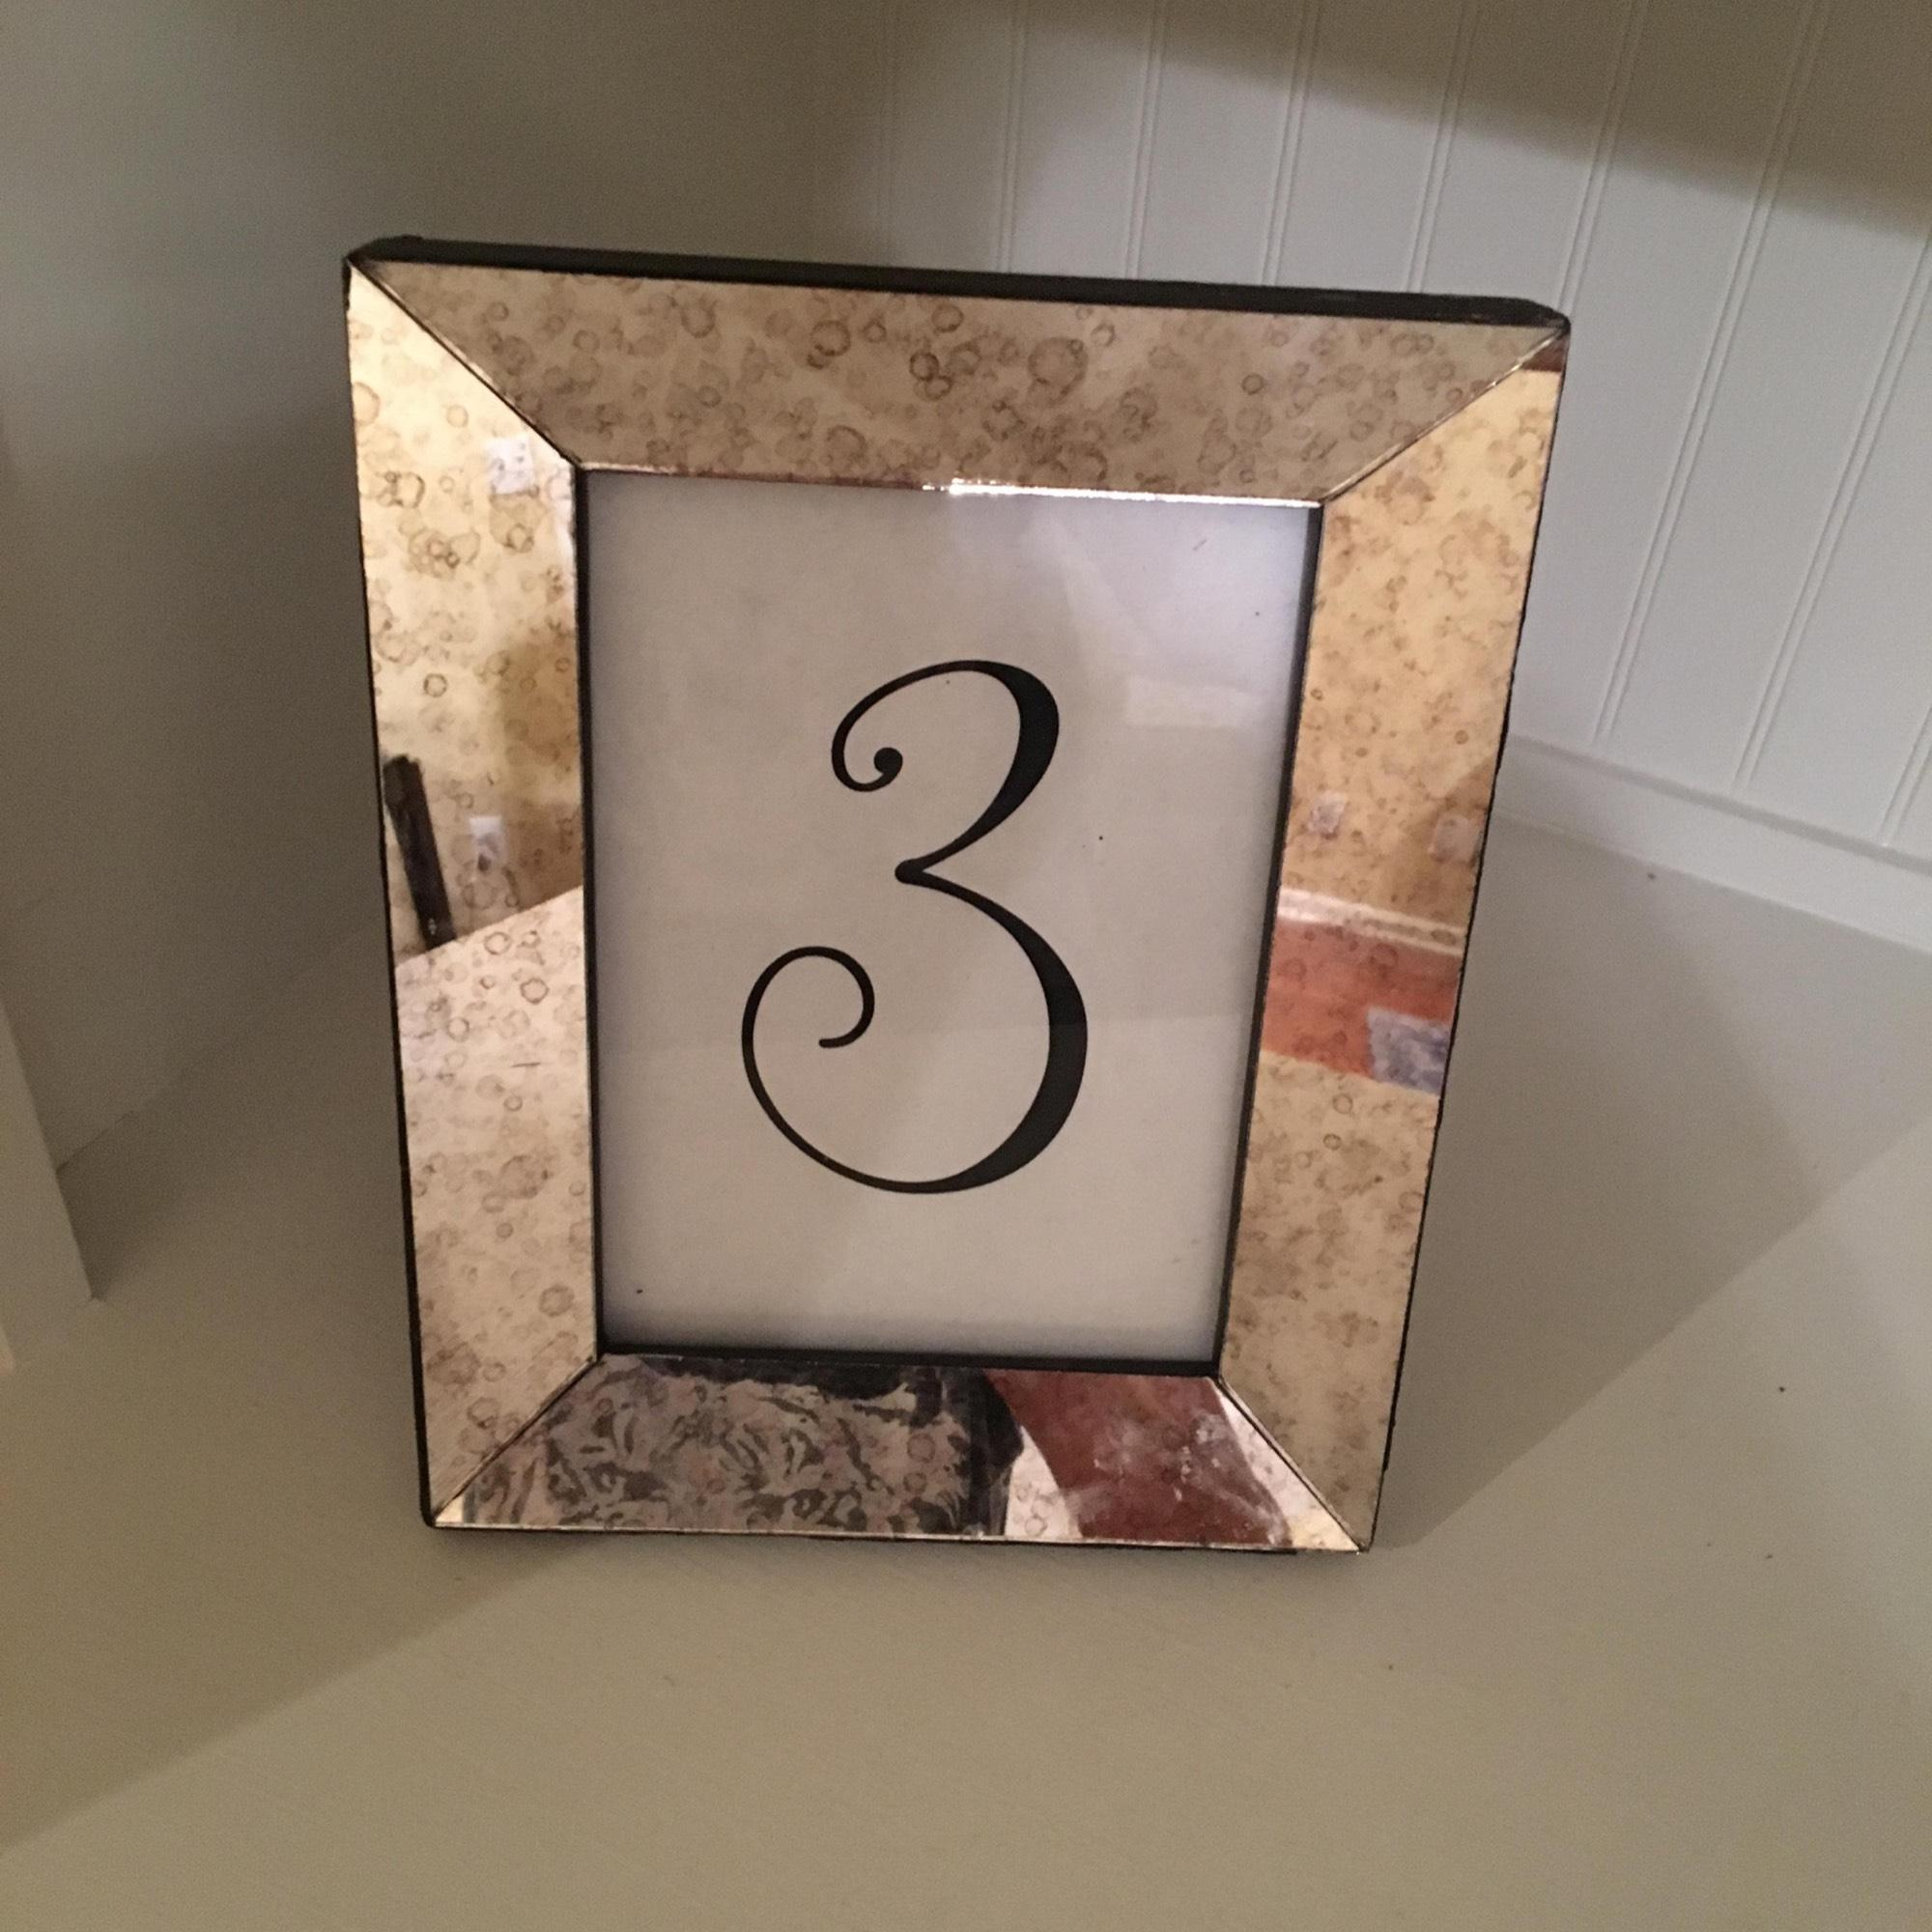 Silver Mercury Glass Table Number Holders Centerpiece